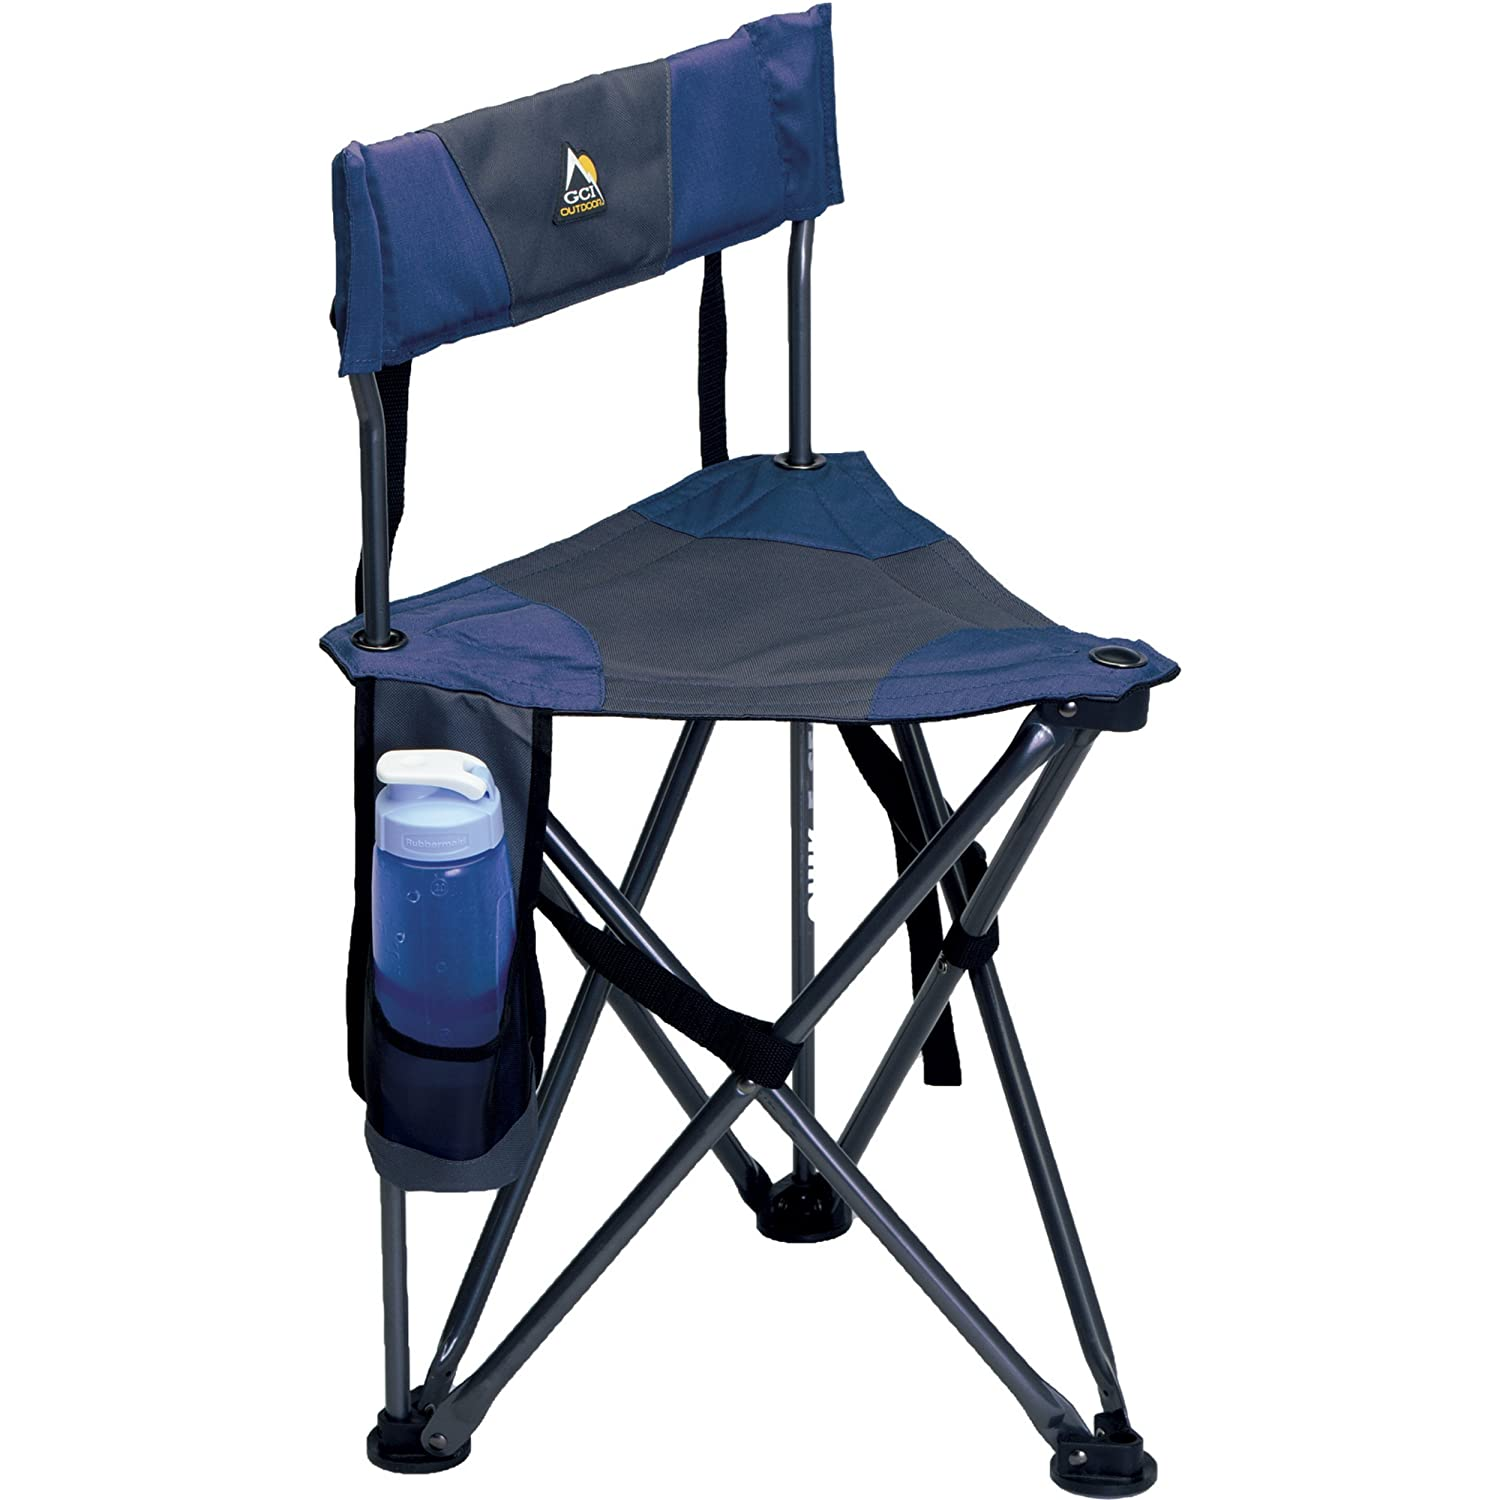 GCI Outdoor Quick E Seat Folding Tripod Field Chair with Backrest